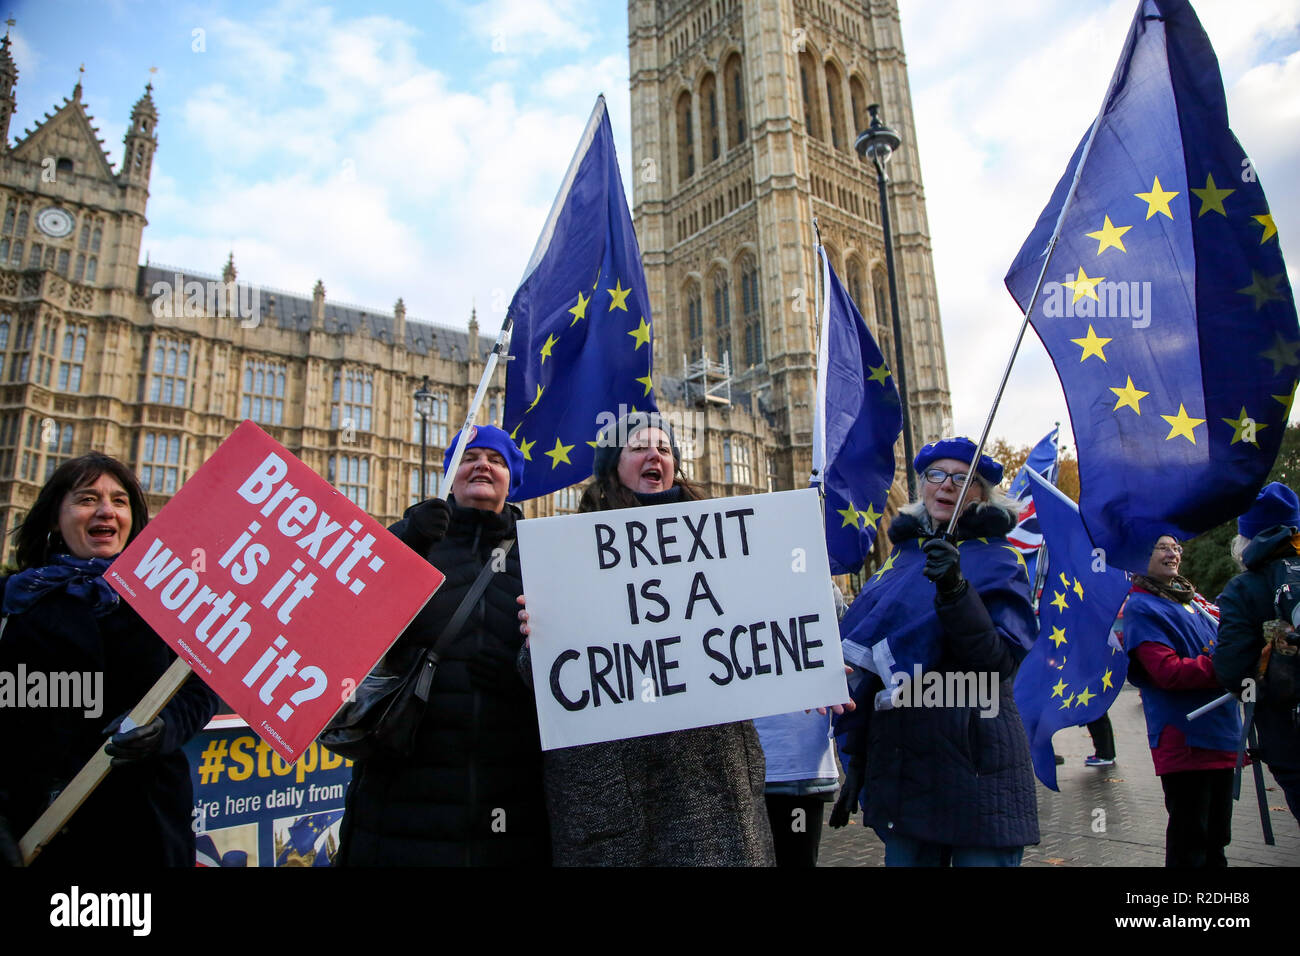 London, UK. 19th Nov, 2018. Pro-EU protesters are seen holding flags and placards during the protest.Pro-EU protesters from SODEM (Stand in Defiance European Movement) including a large dinosaur demonstrates with their placards and European Union flags outside the Palace of Westminster in central London ahead of the crucial week of Brexit negotiations as Prime Minister Theresa May prepares to meet Chief negotiator Michel Barnier later this week to discuss the withdrawal deal. Credit: Dinendra Haria/SOPA Images/ZUMA Wire/Alamy Live News - Stock Image